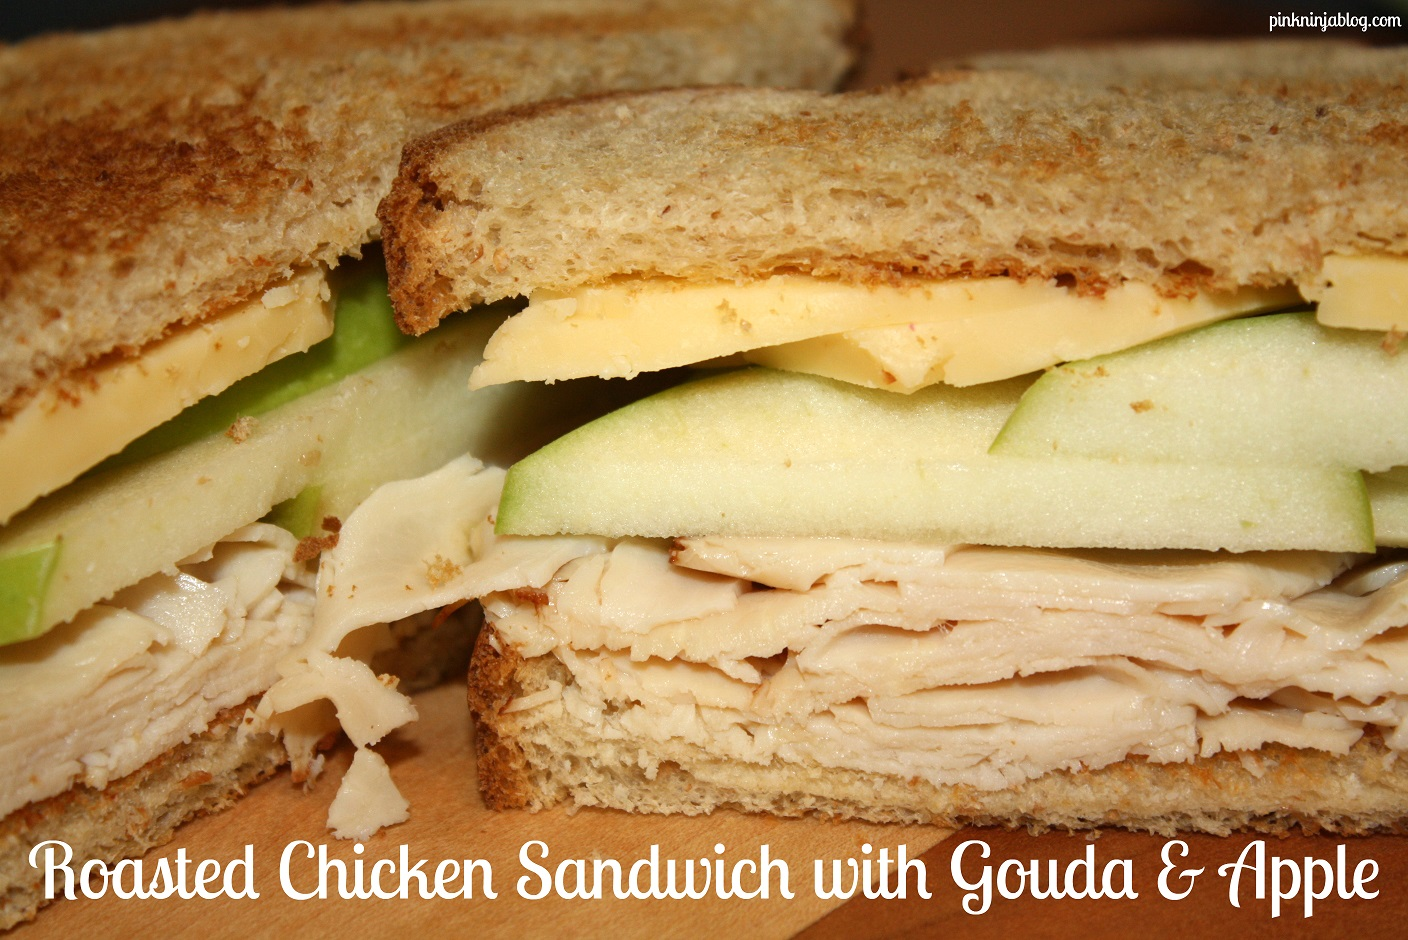 Roasted Chicken Sandwich with Gouda & Apple